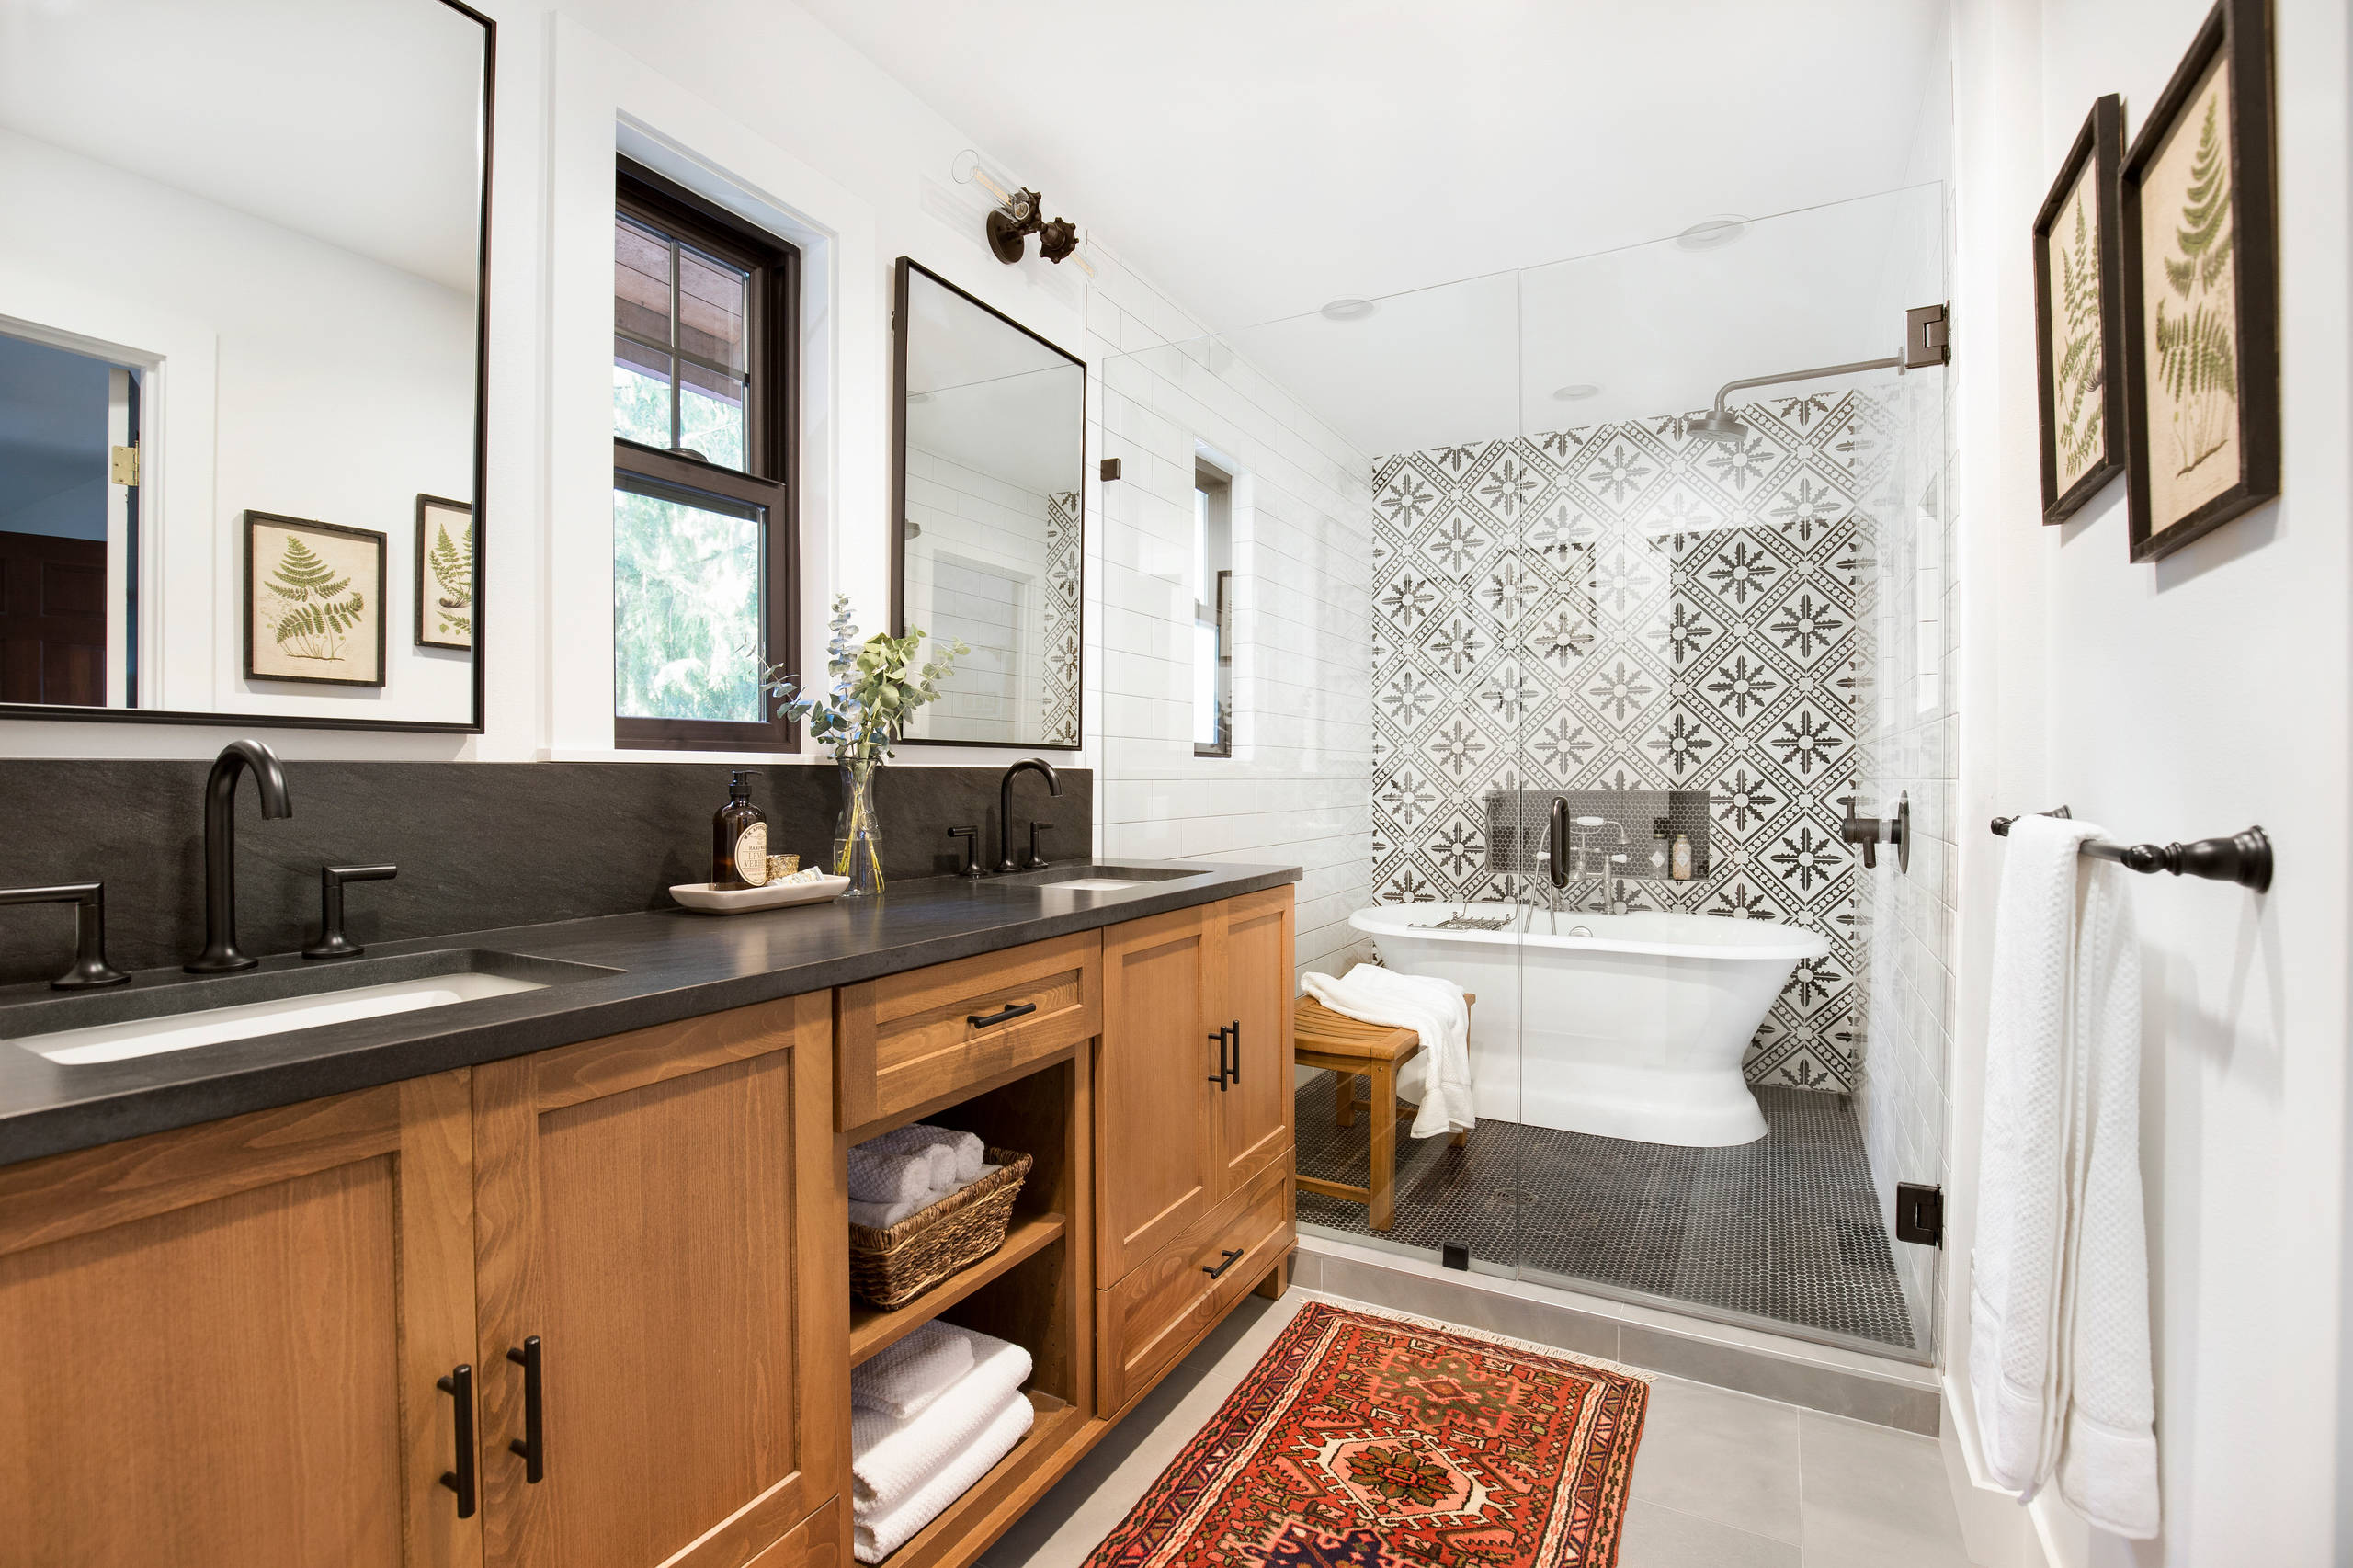 75 Beautiful Farmhouse Bathroom Pictures Ideas December 2020 Houzz